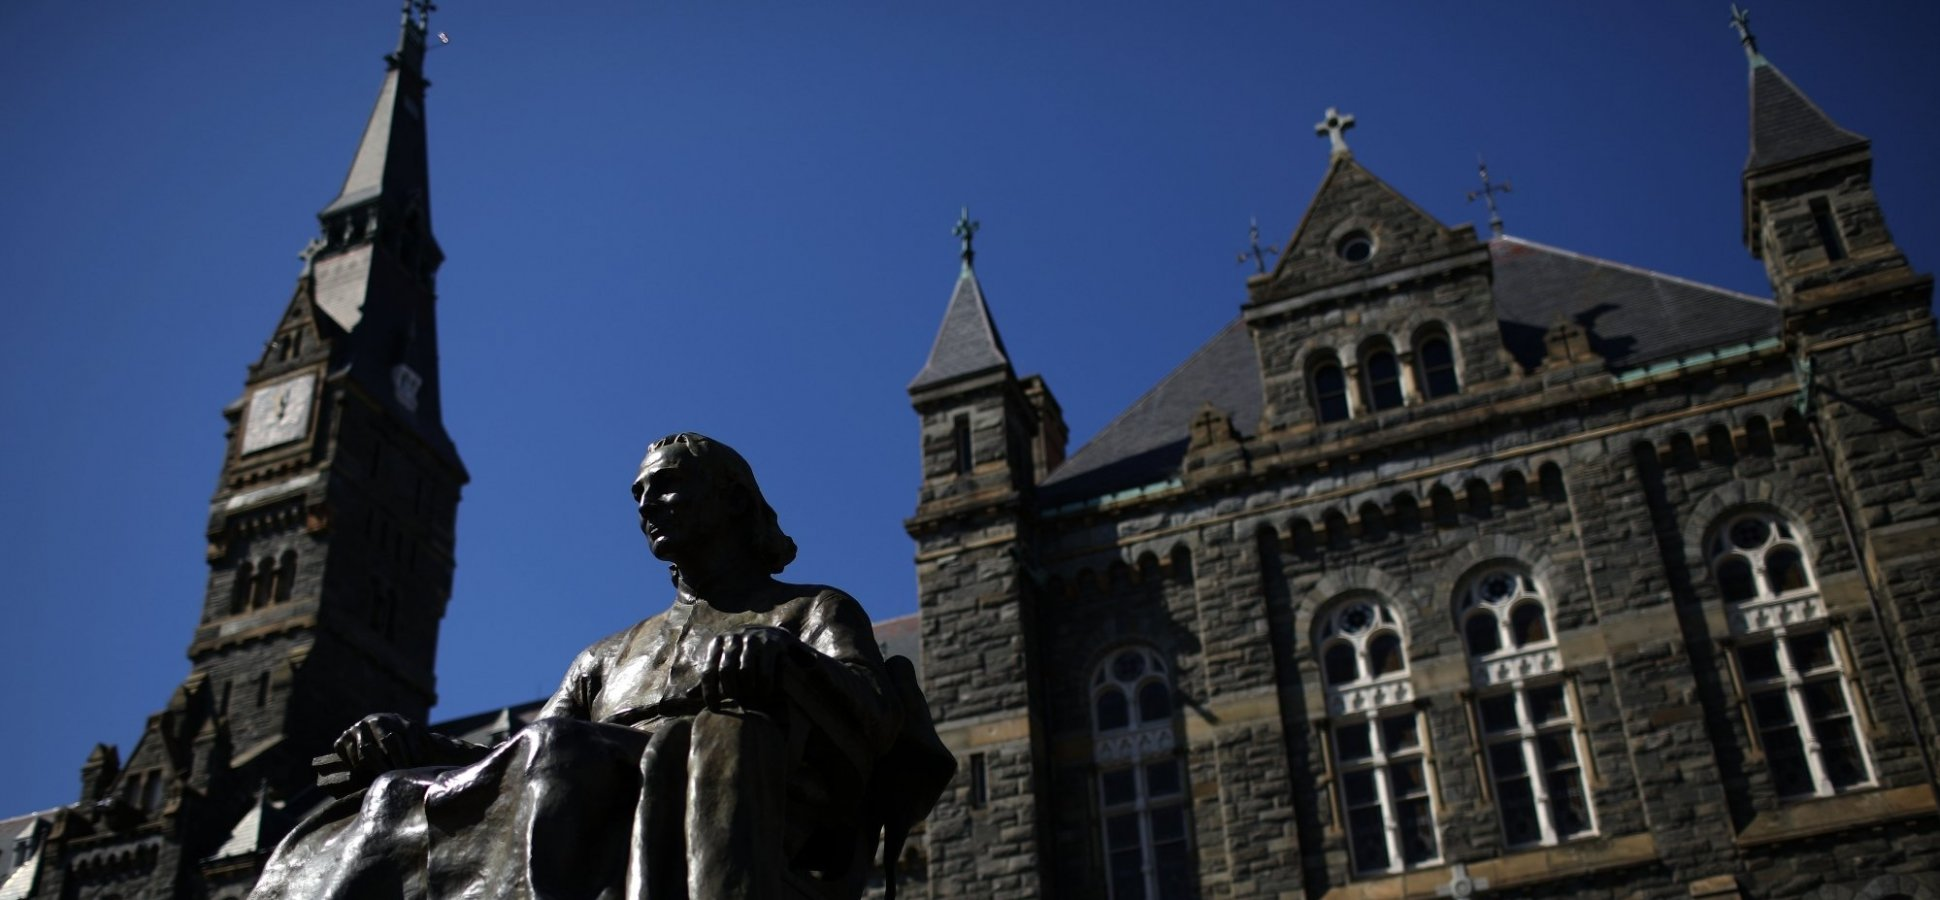 Georgetown University Career Experts Say to Get Your Next Job, Your Resume Should Have These 7 Things